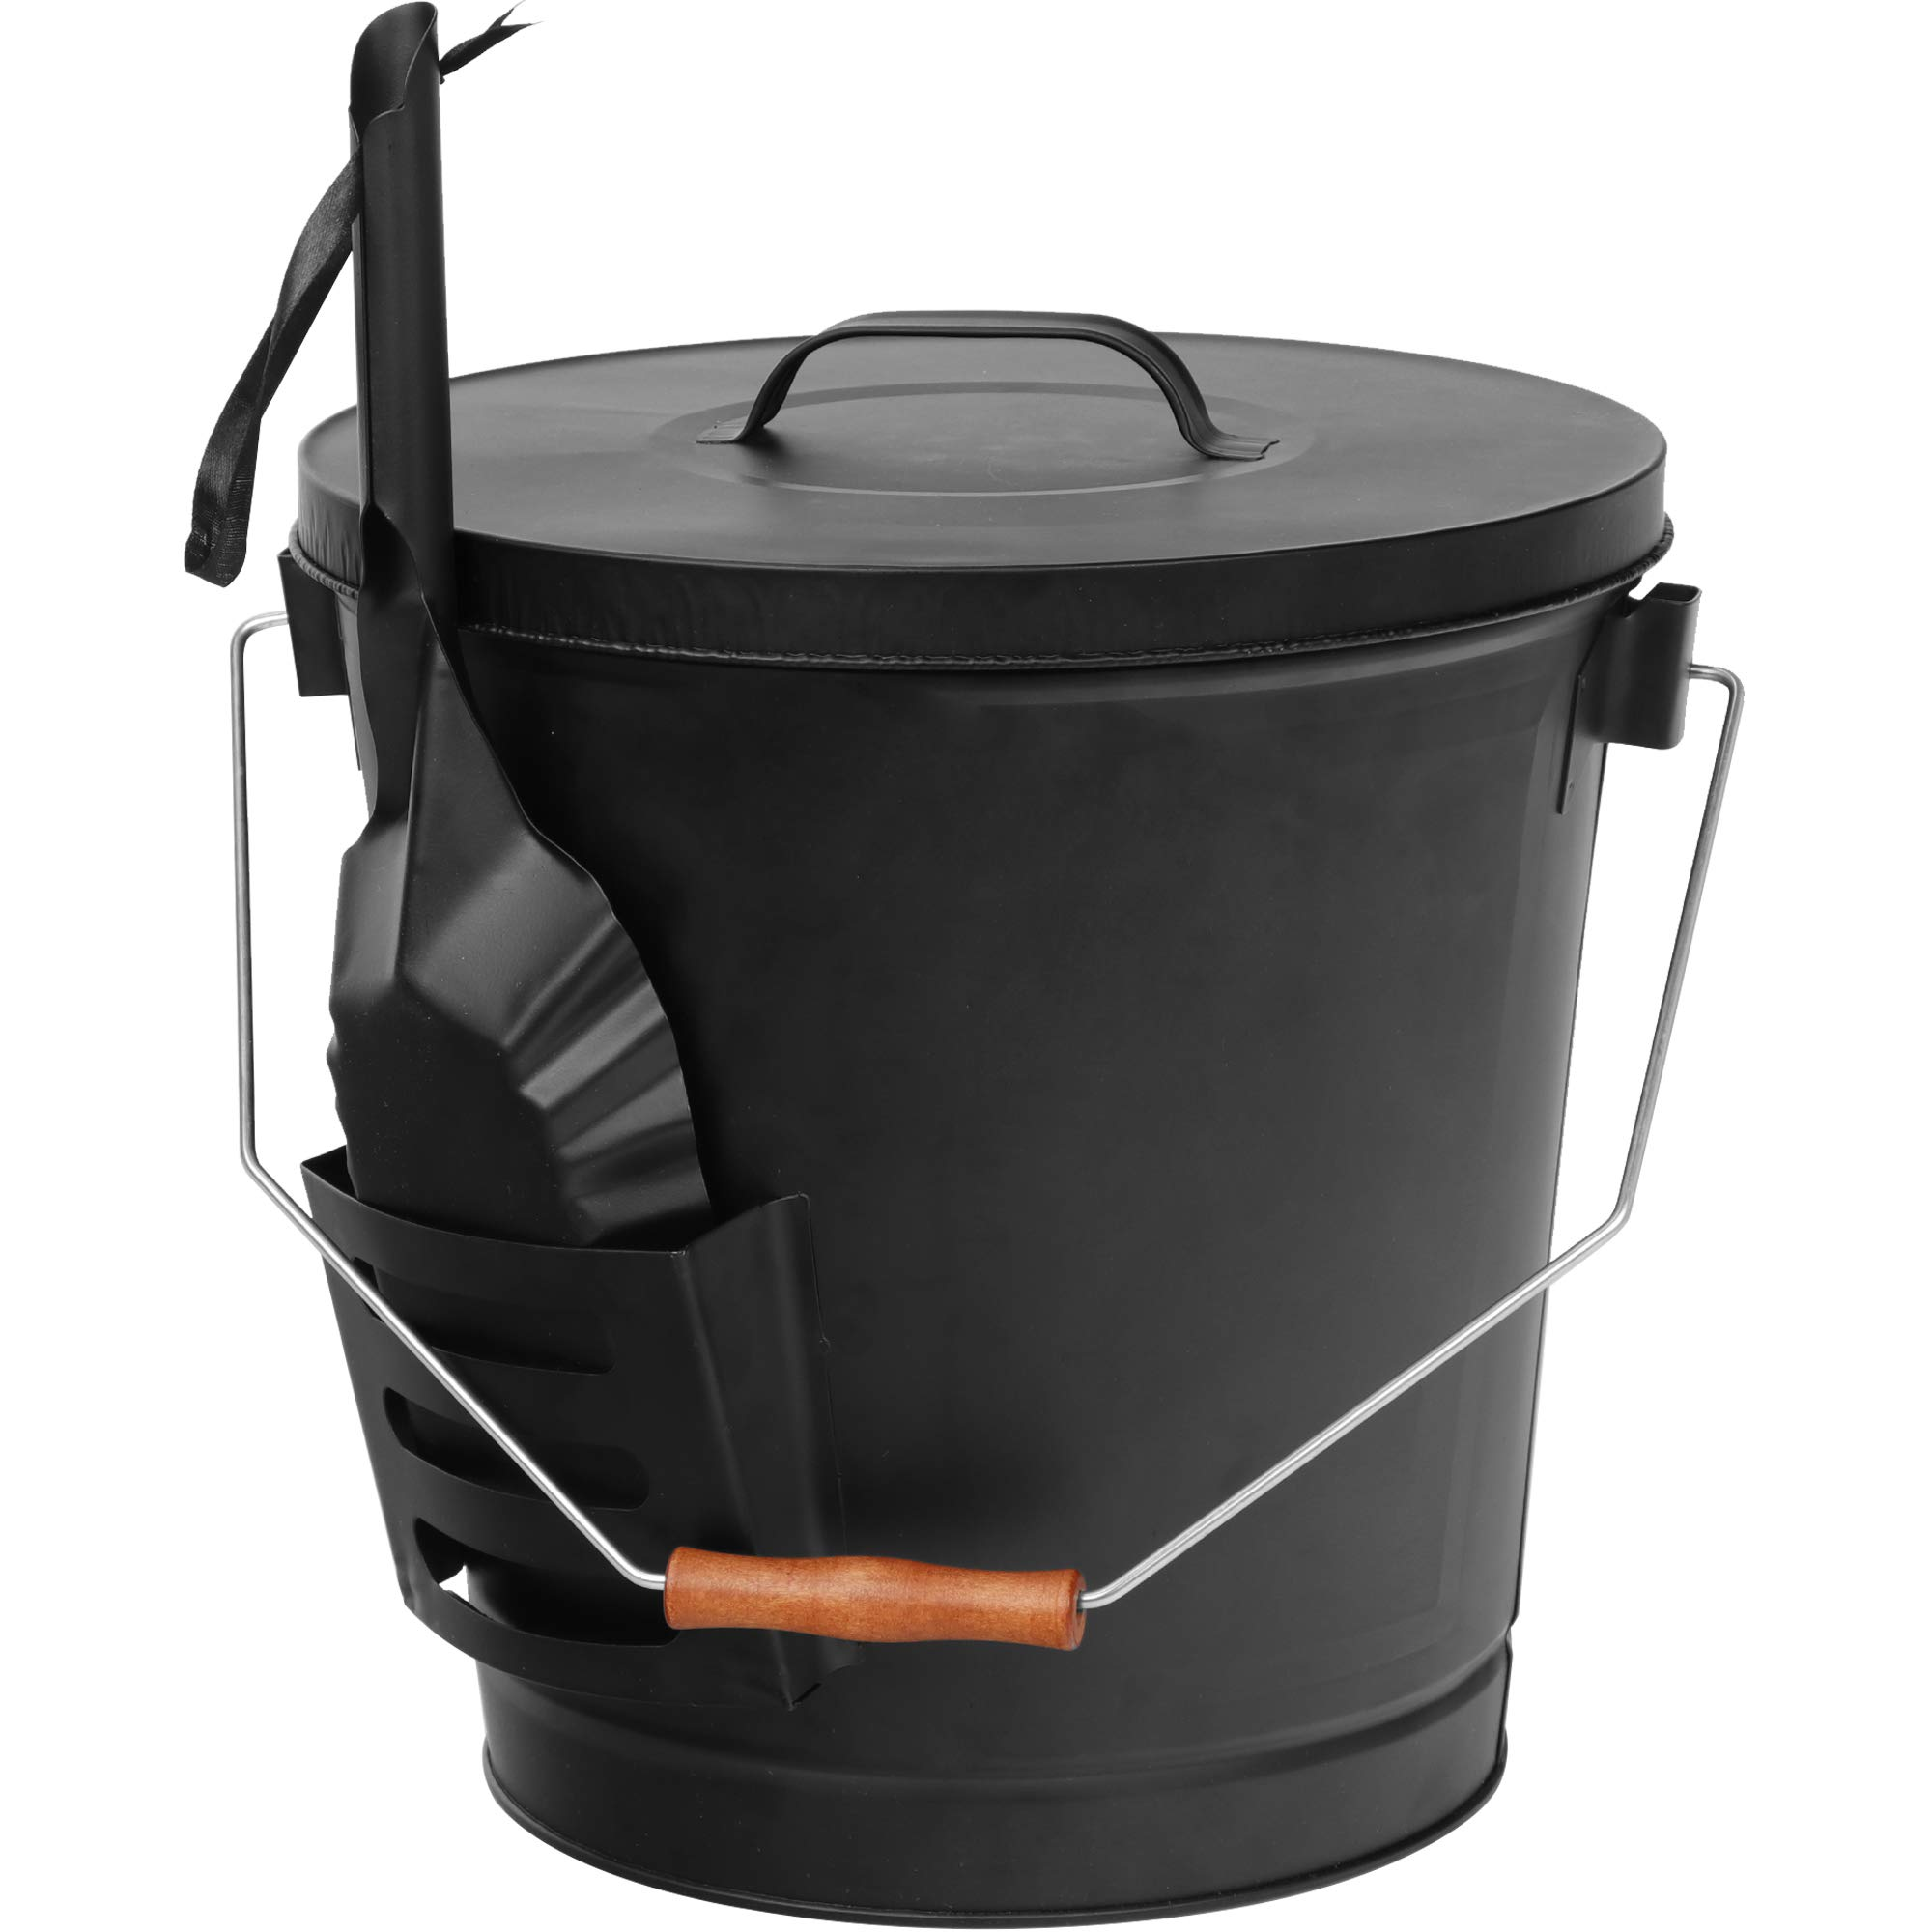 Wood Burning Stoves-Hearth Accessories Home-Complete 4.75 Gallon Black Ash Bucket with Lid and Shovel-Essential Tools for Fireplaces Fire Pits